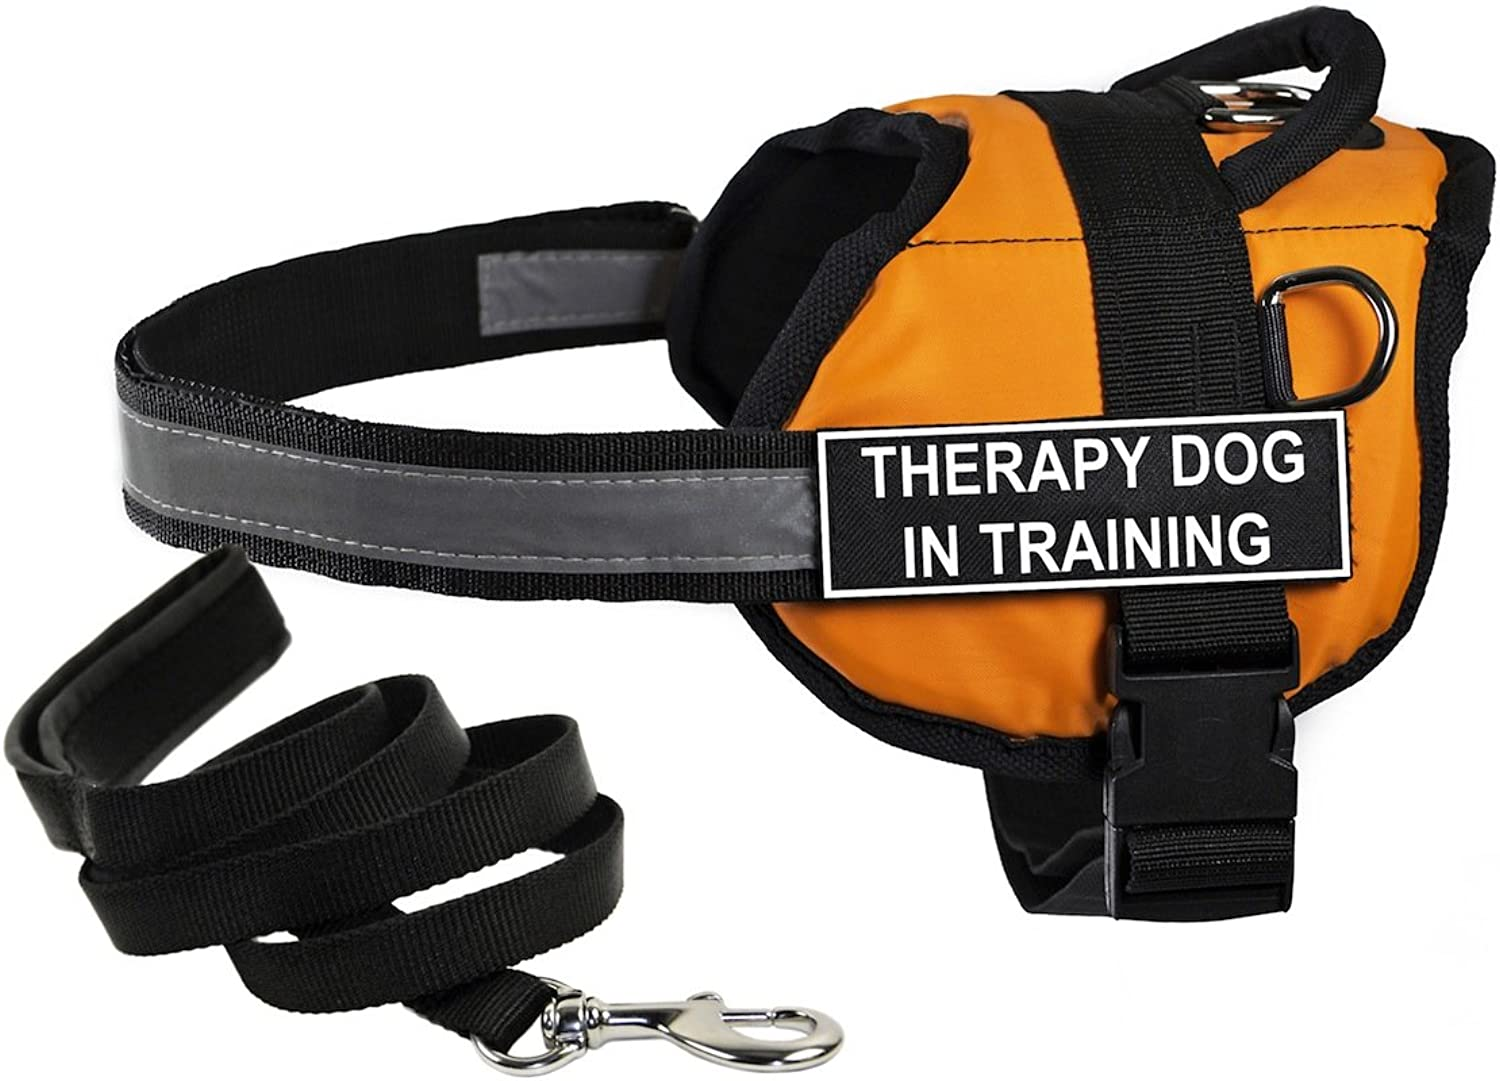 Dean & Tyler's DT Works orange THERAPY DOG IN TRAINING Harness, XSmall, with 6 ft Padded Puppy Leash.